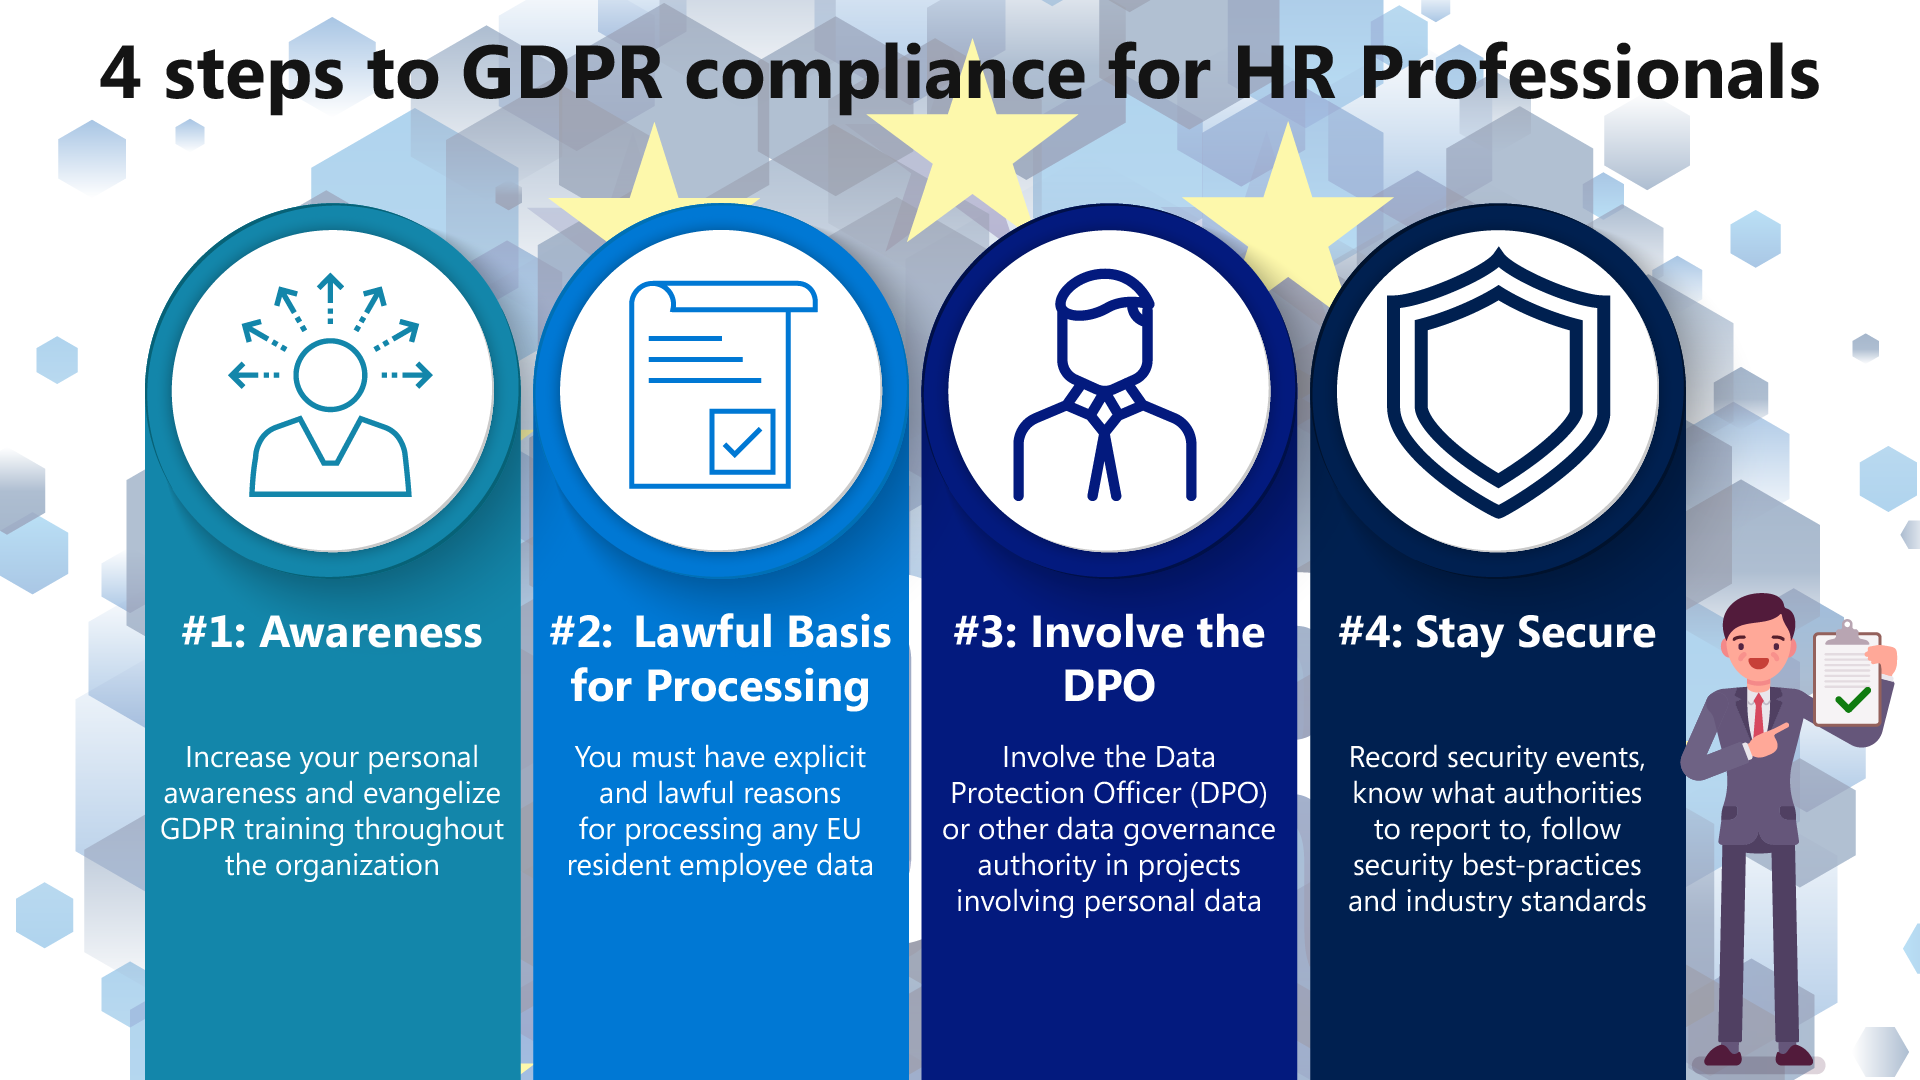 HR Personnel and GDPR